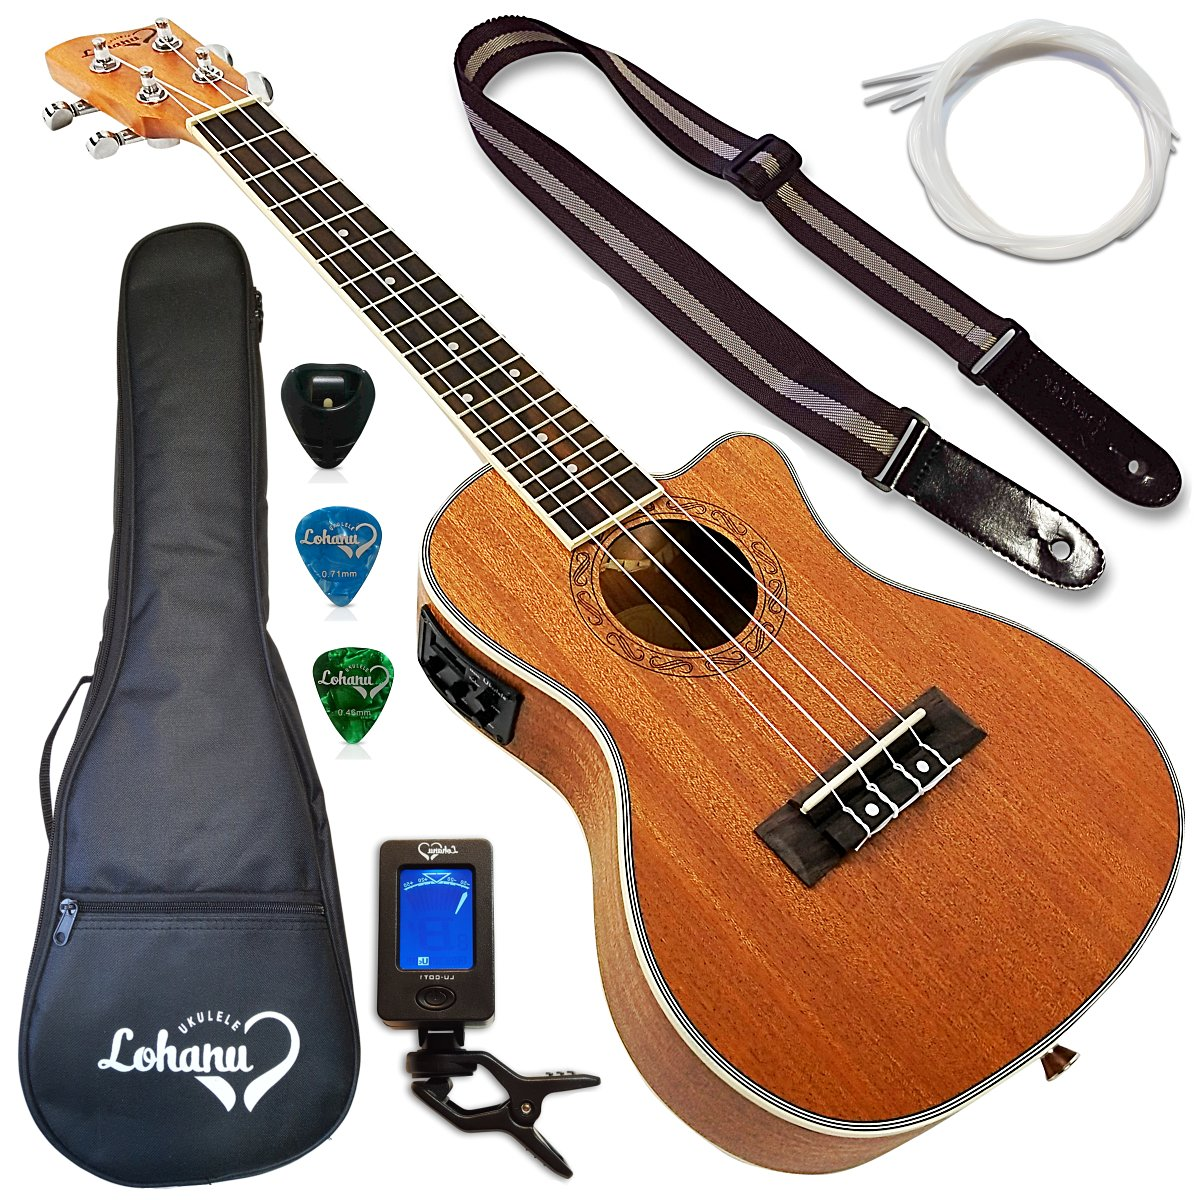 4. Lohanu Ukulele Cutaway Electric Concert With 3 Band EQ